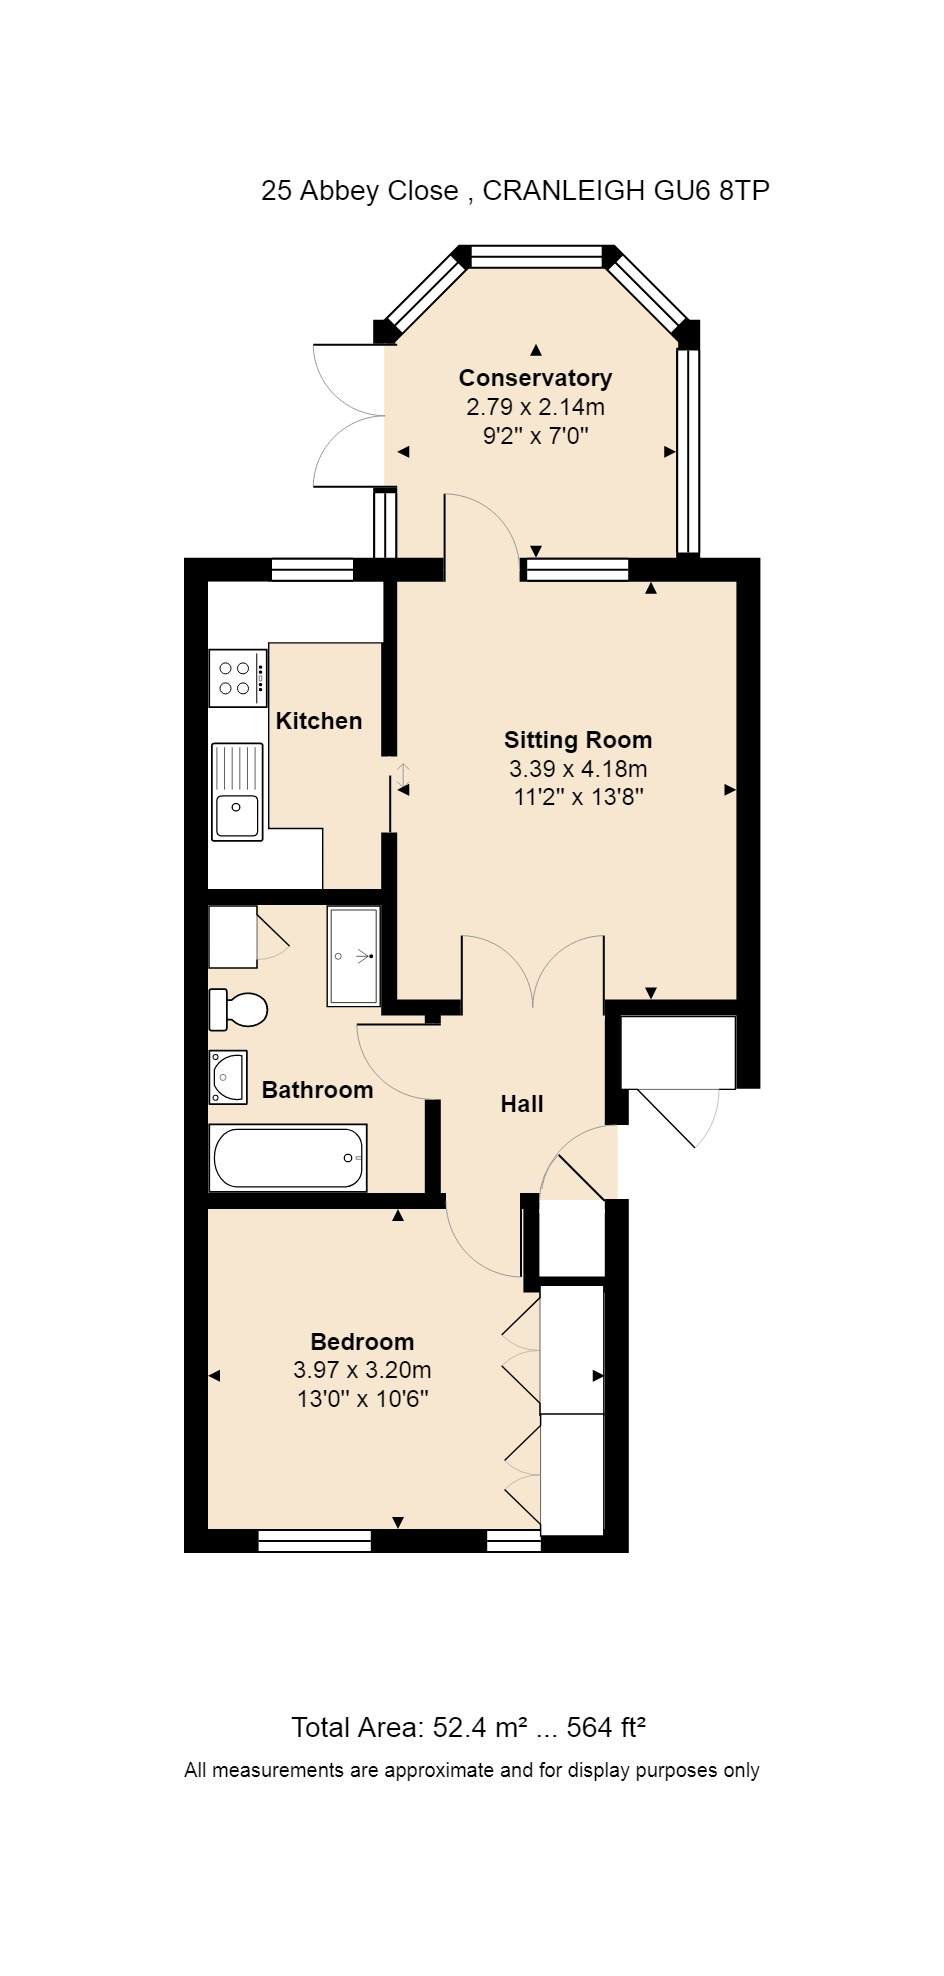 25 Abbey Close Floorplan